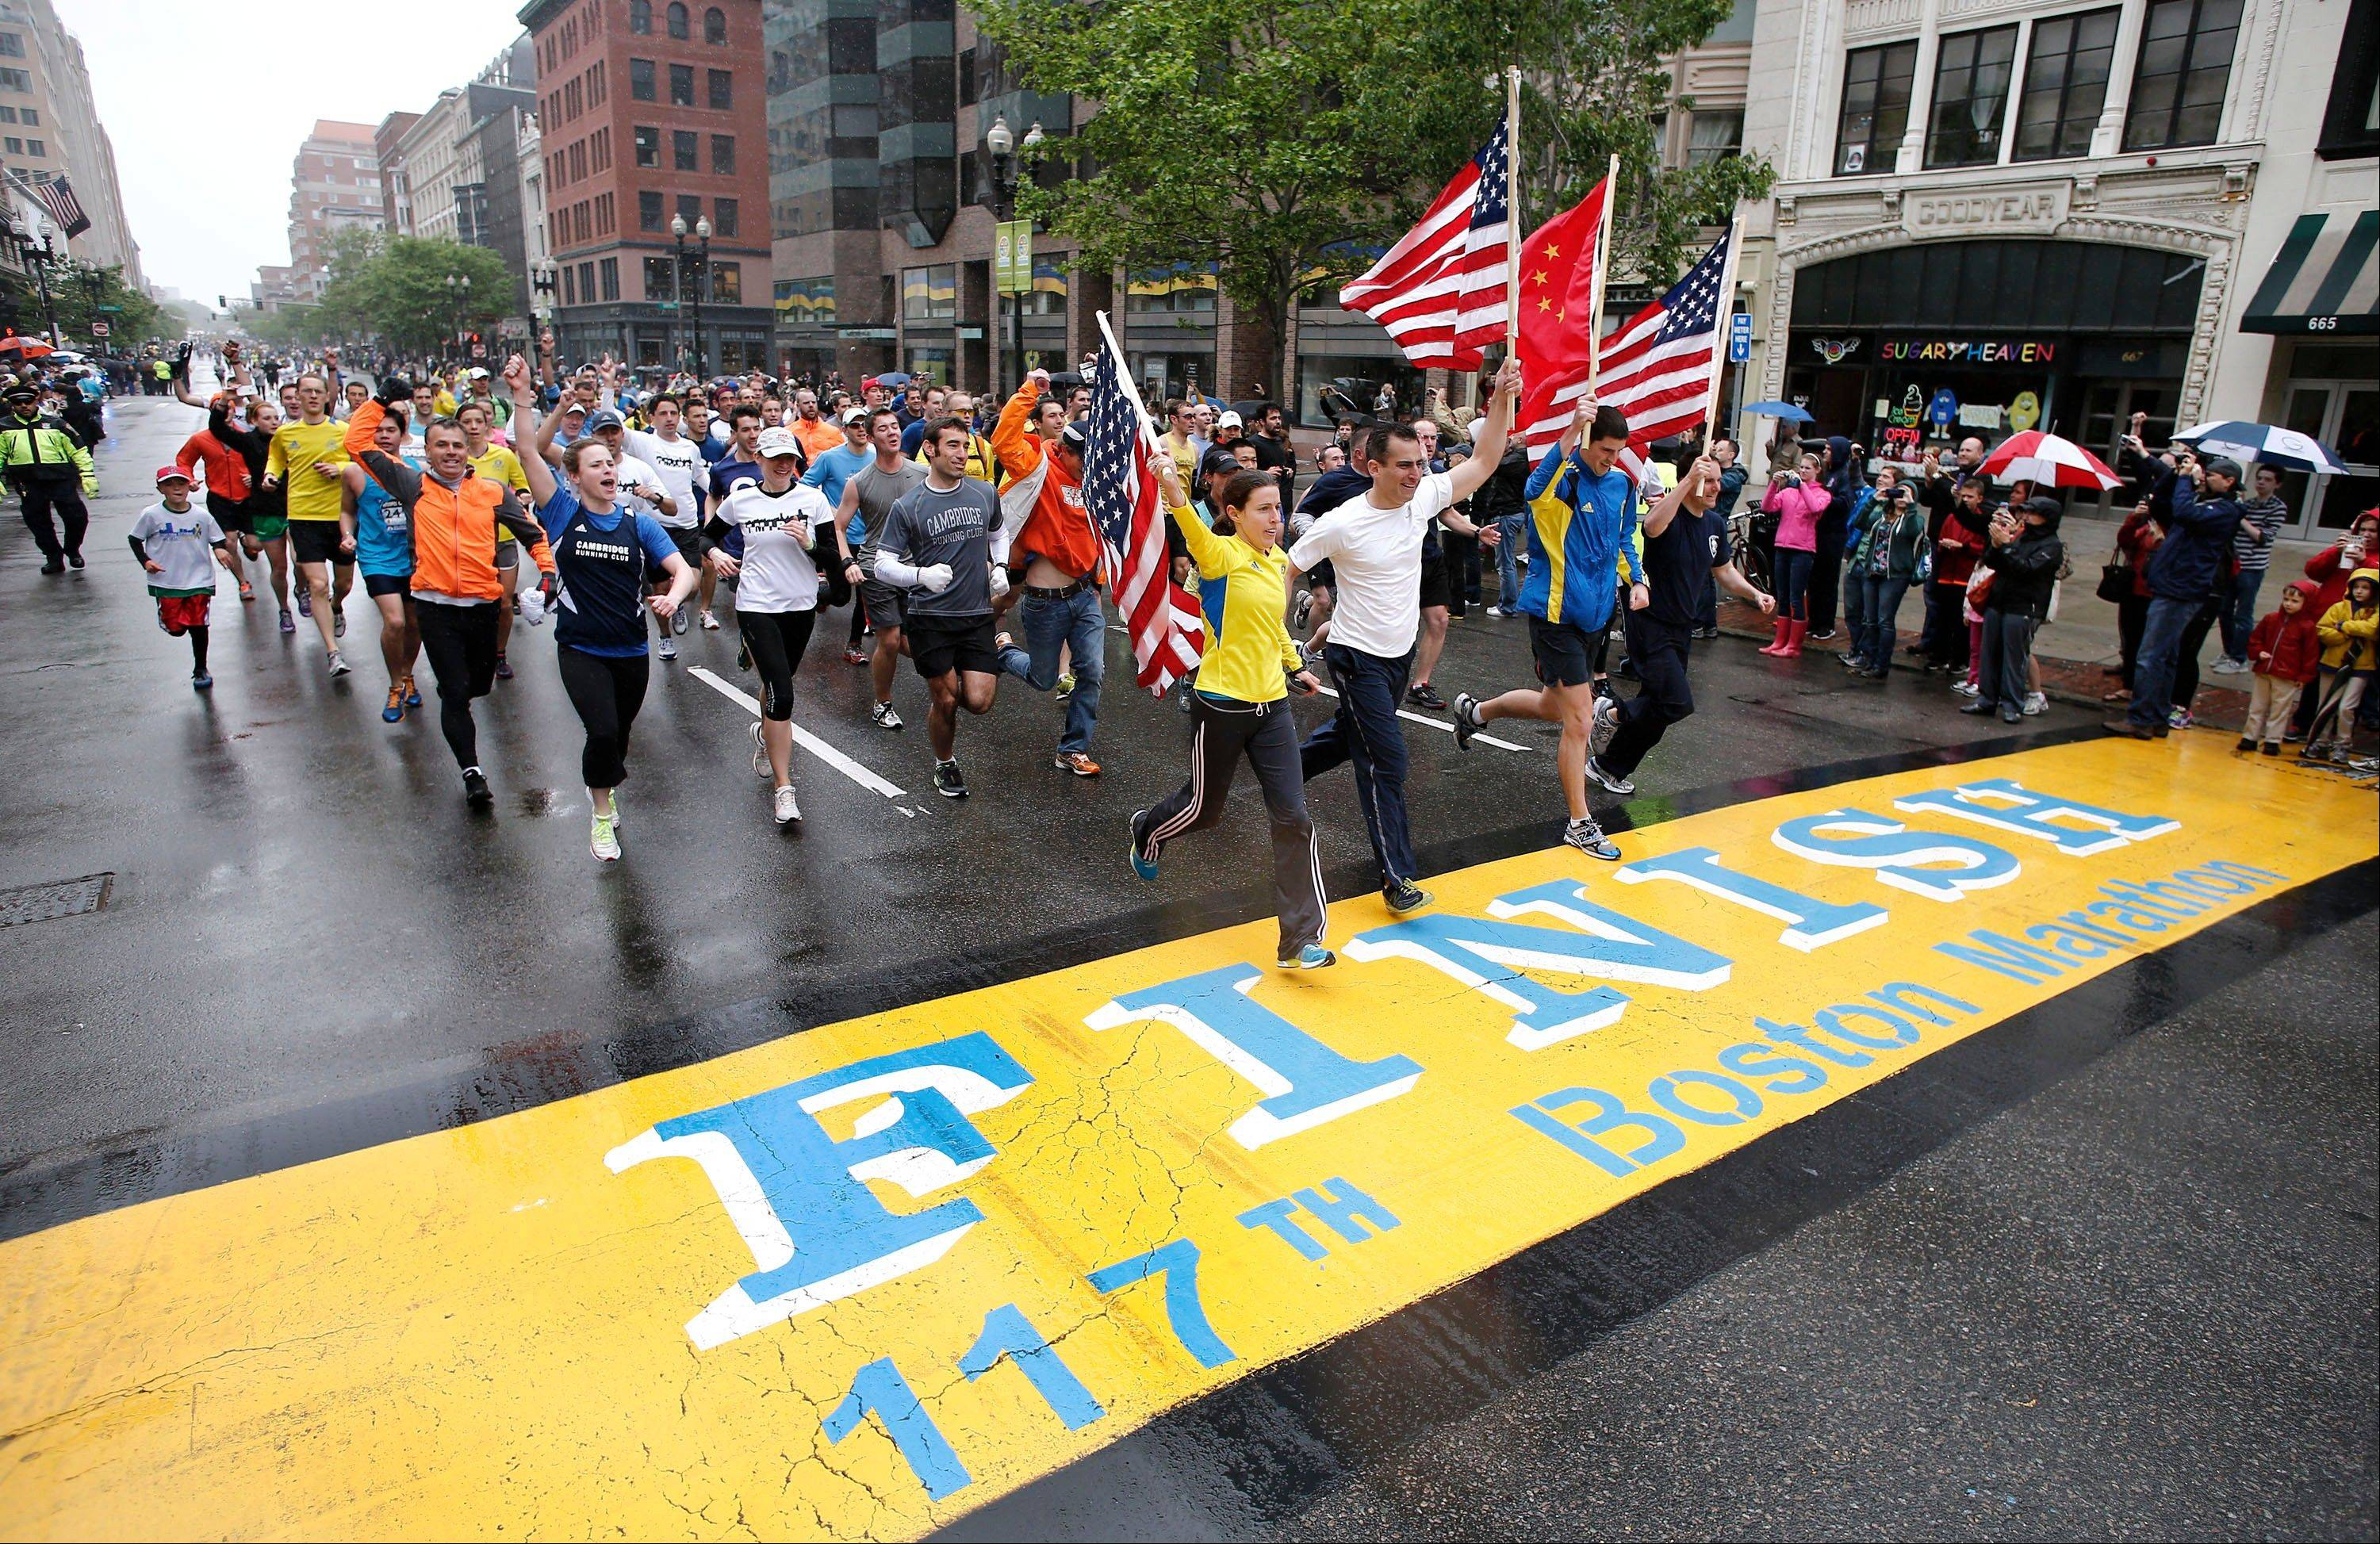 Runners who were unable to finish the Boston Marathon on April 15 because of the bombings cross the finish line on Boylston Street after the city allowed them to finish the last mile of the race in Boston, Saturday, May 25.